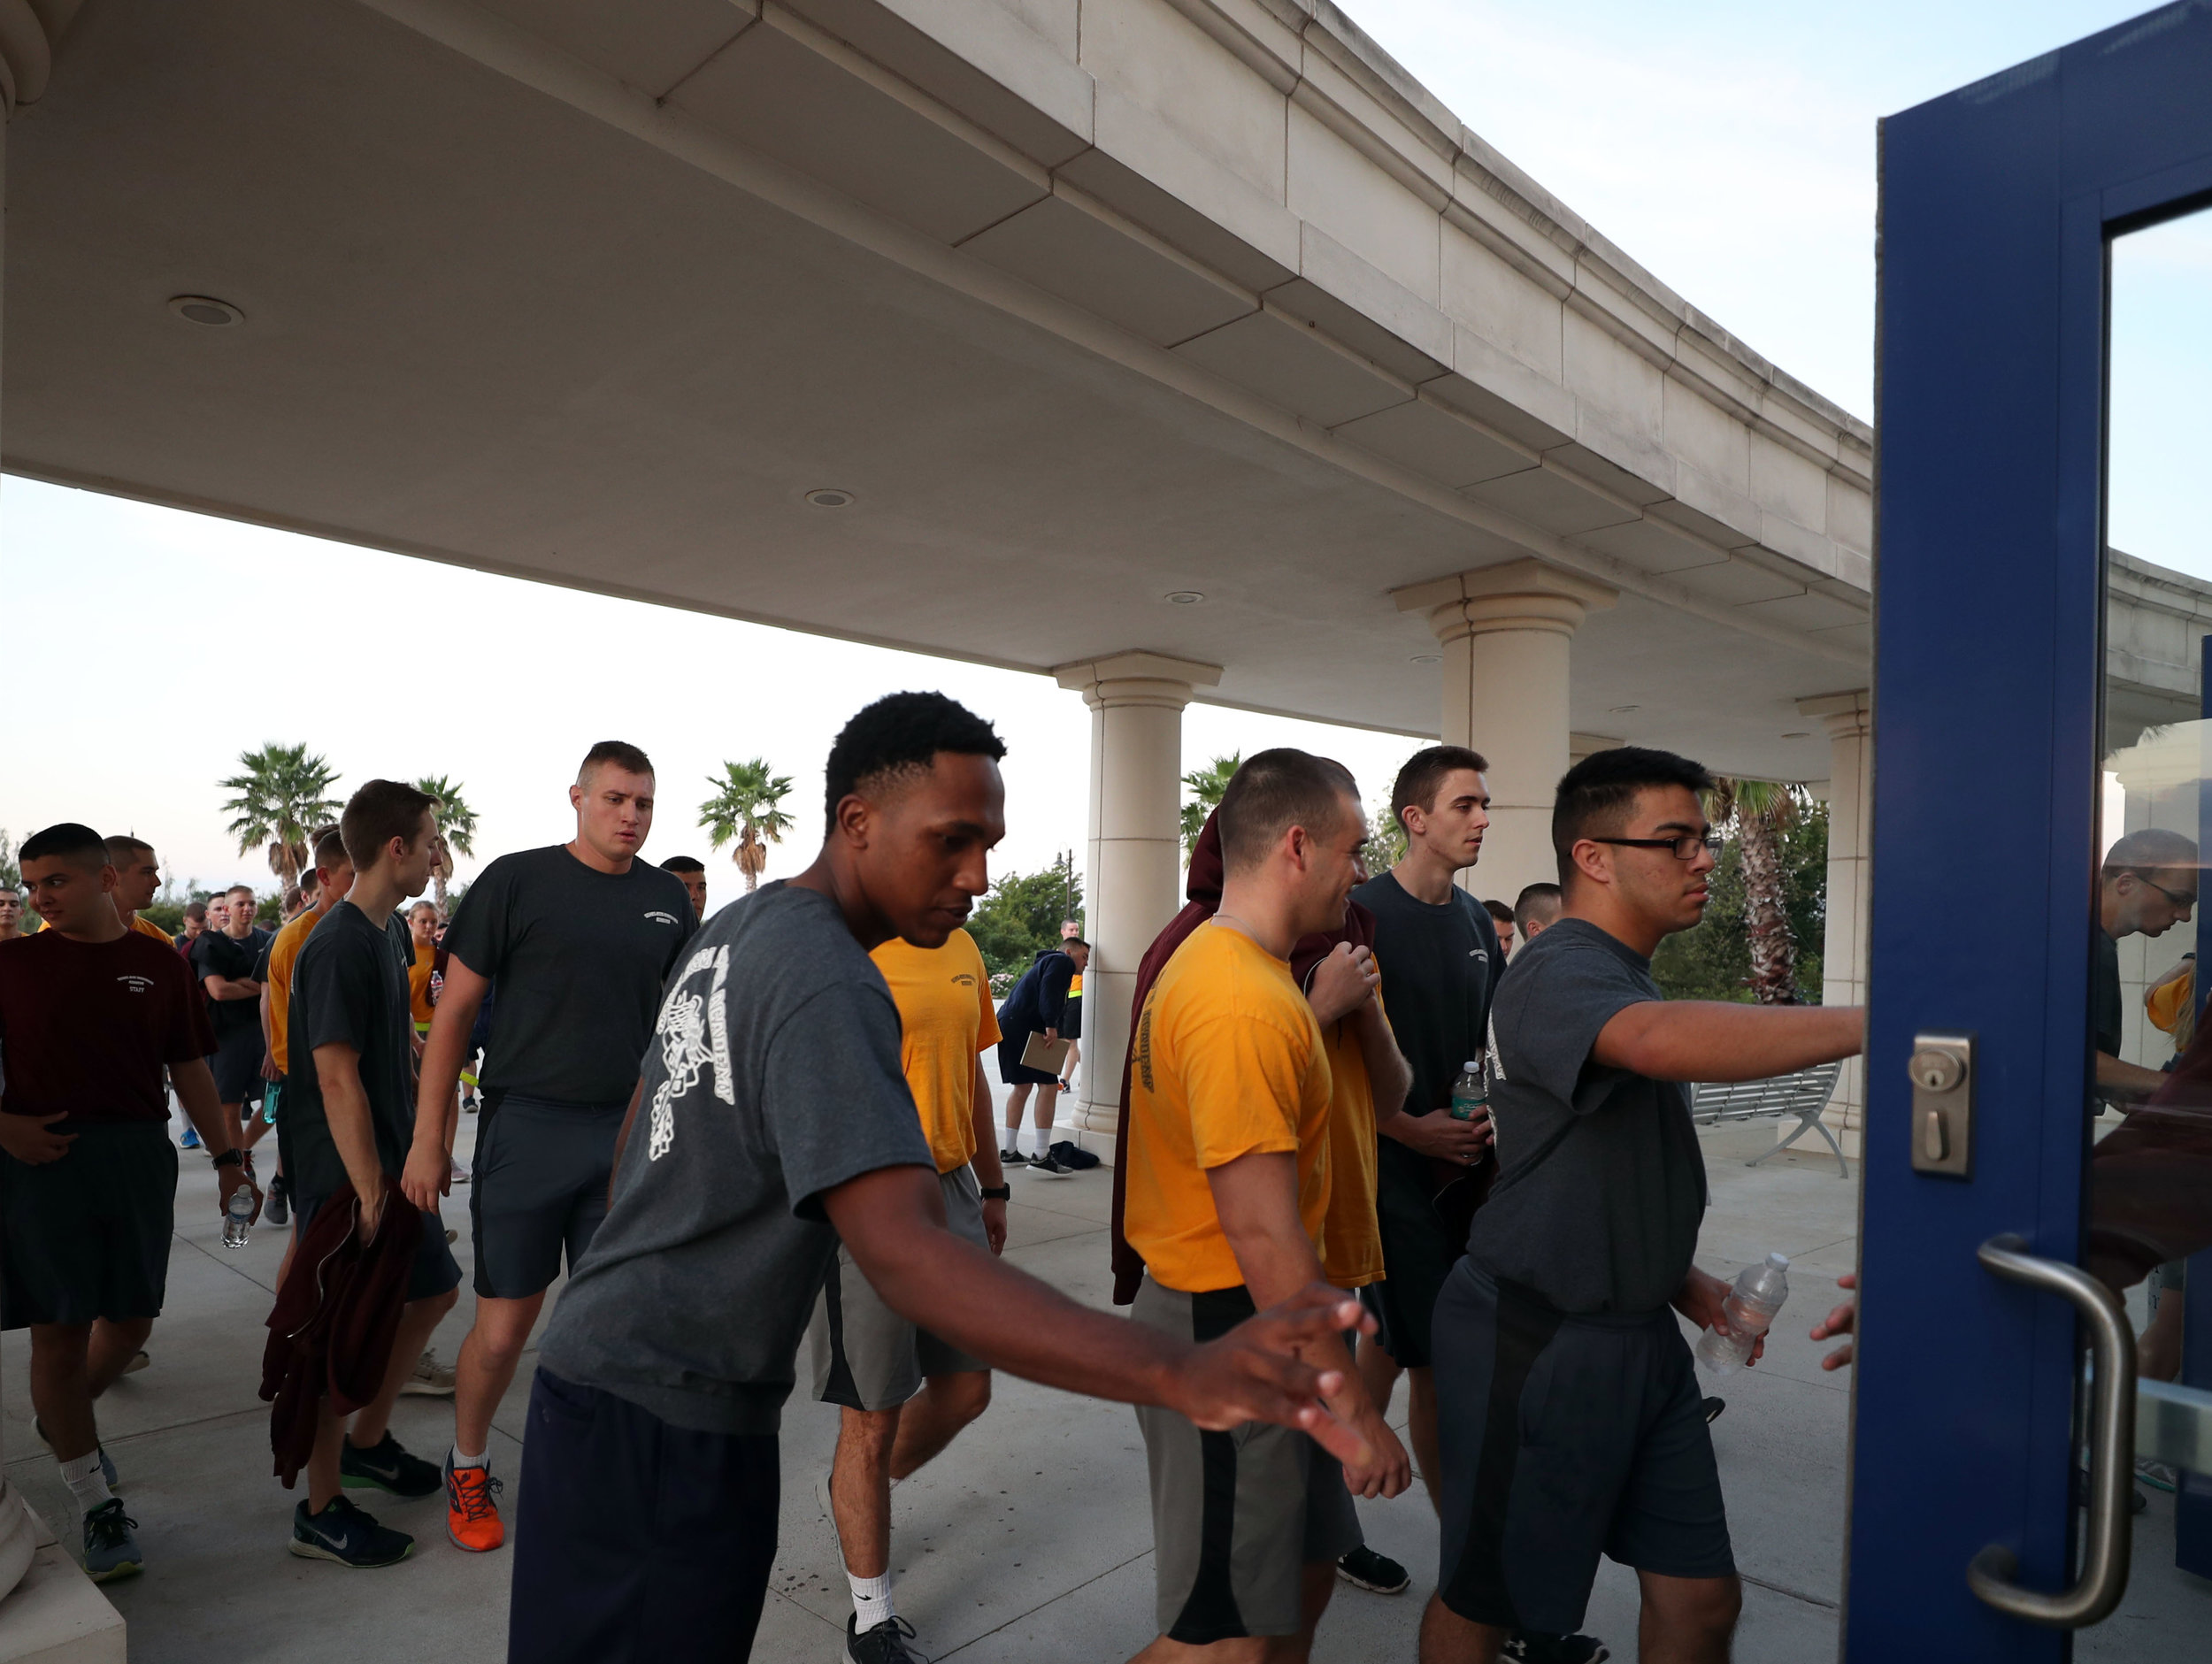 Cadets walk into their dorm, Texas A&M Maritime Academy Hall, after an early morning work out on Wednesday, Nov. 15, 2017. Living in a shared space allows the cadets to truly get to know one another, study together, build camaraderie and have a set schedule.